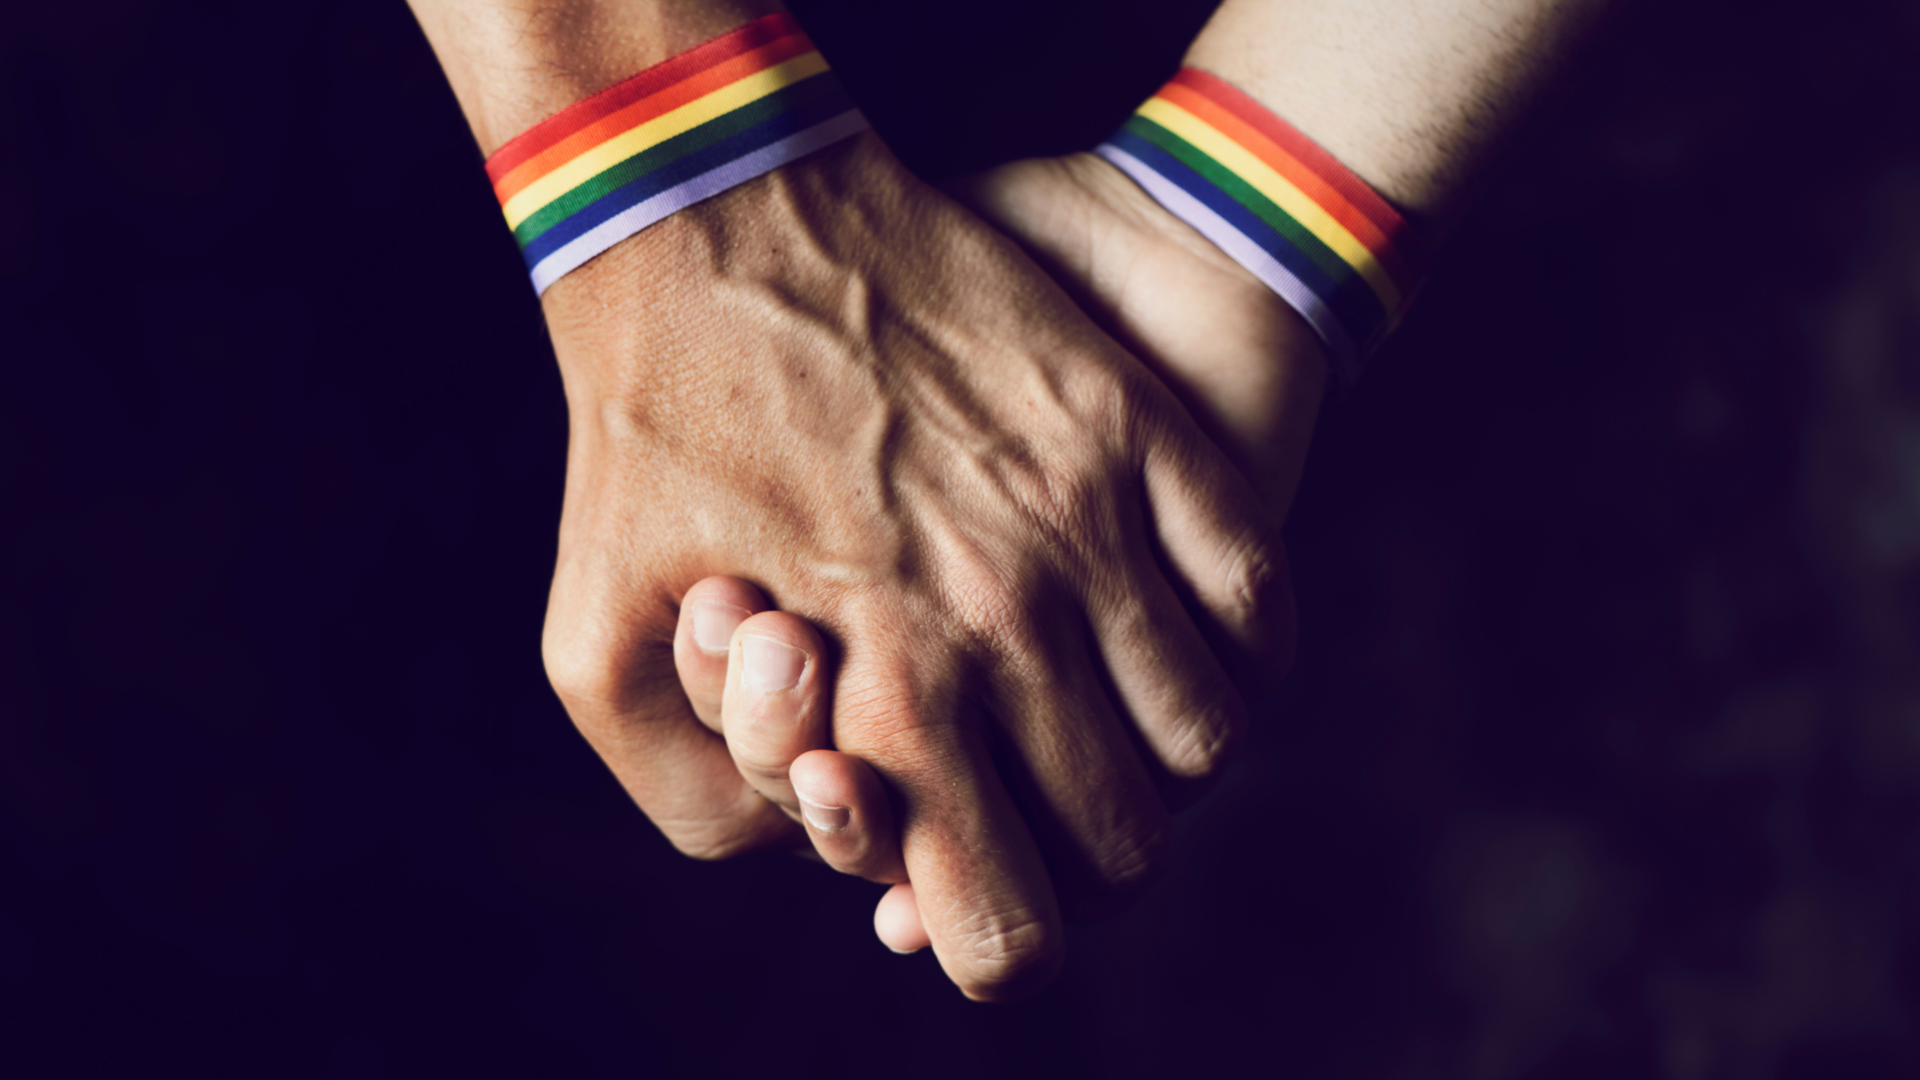 holding hands with Pride wristbands